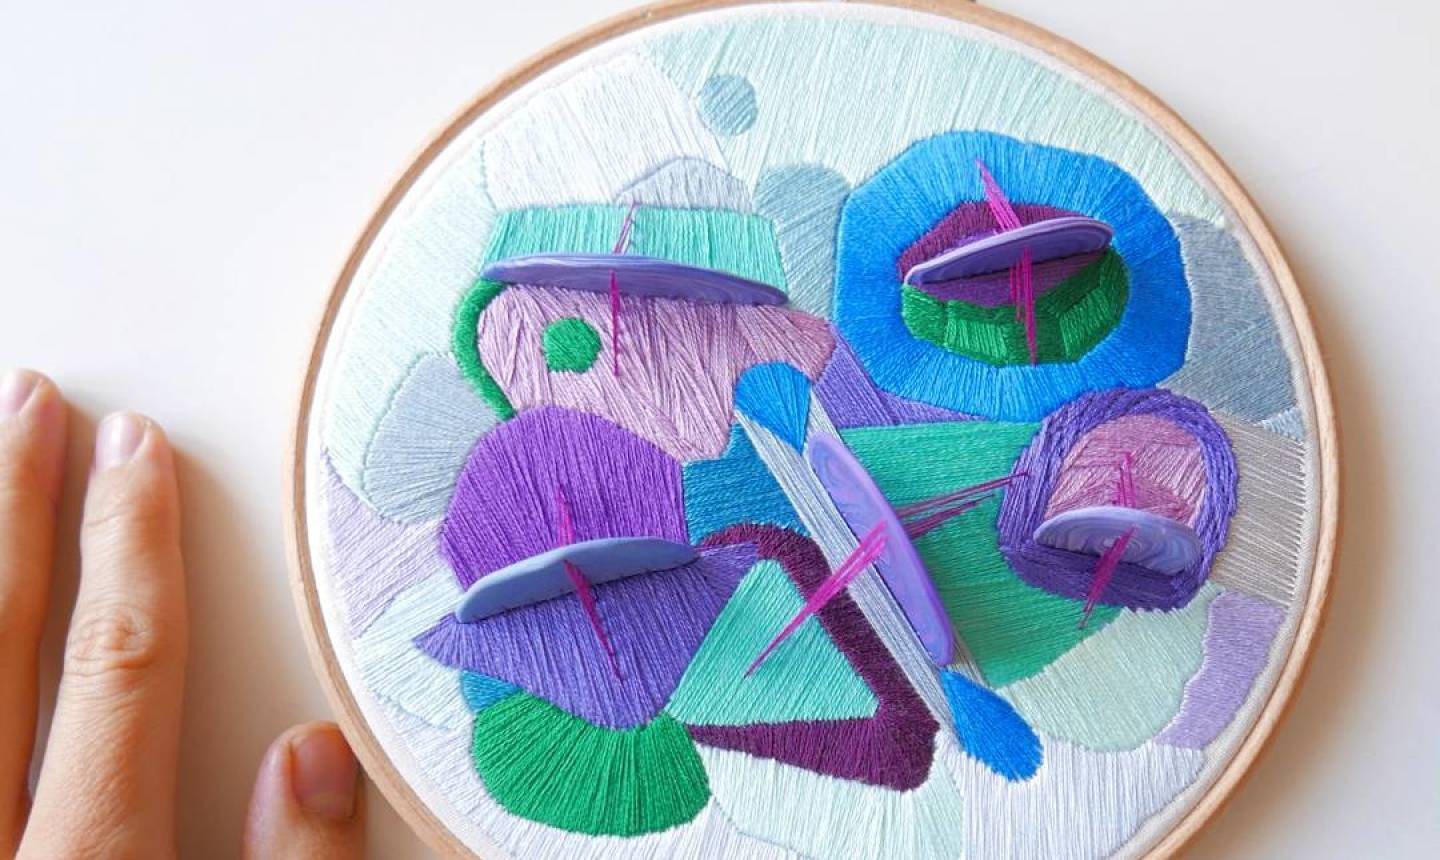 colorful 3d embroidery shapes